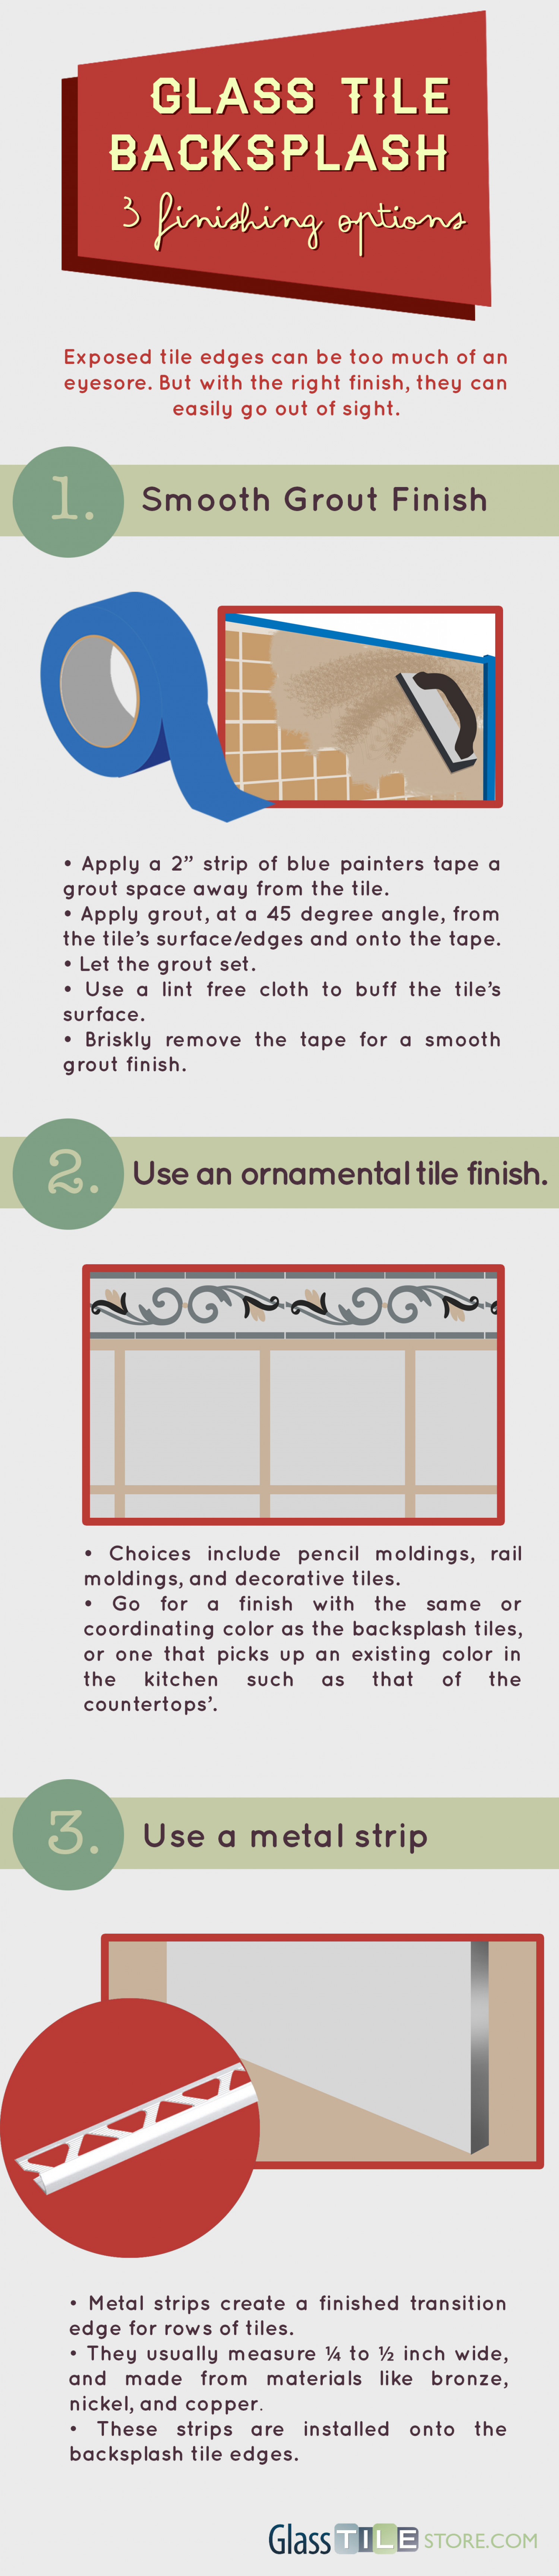 Glass Tile Backsplash Finishing Options Infographic